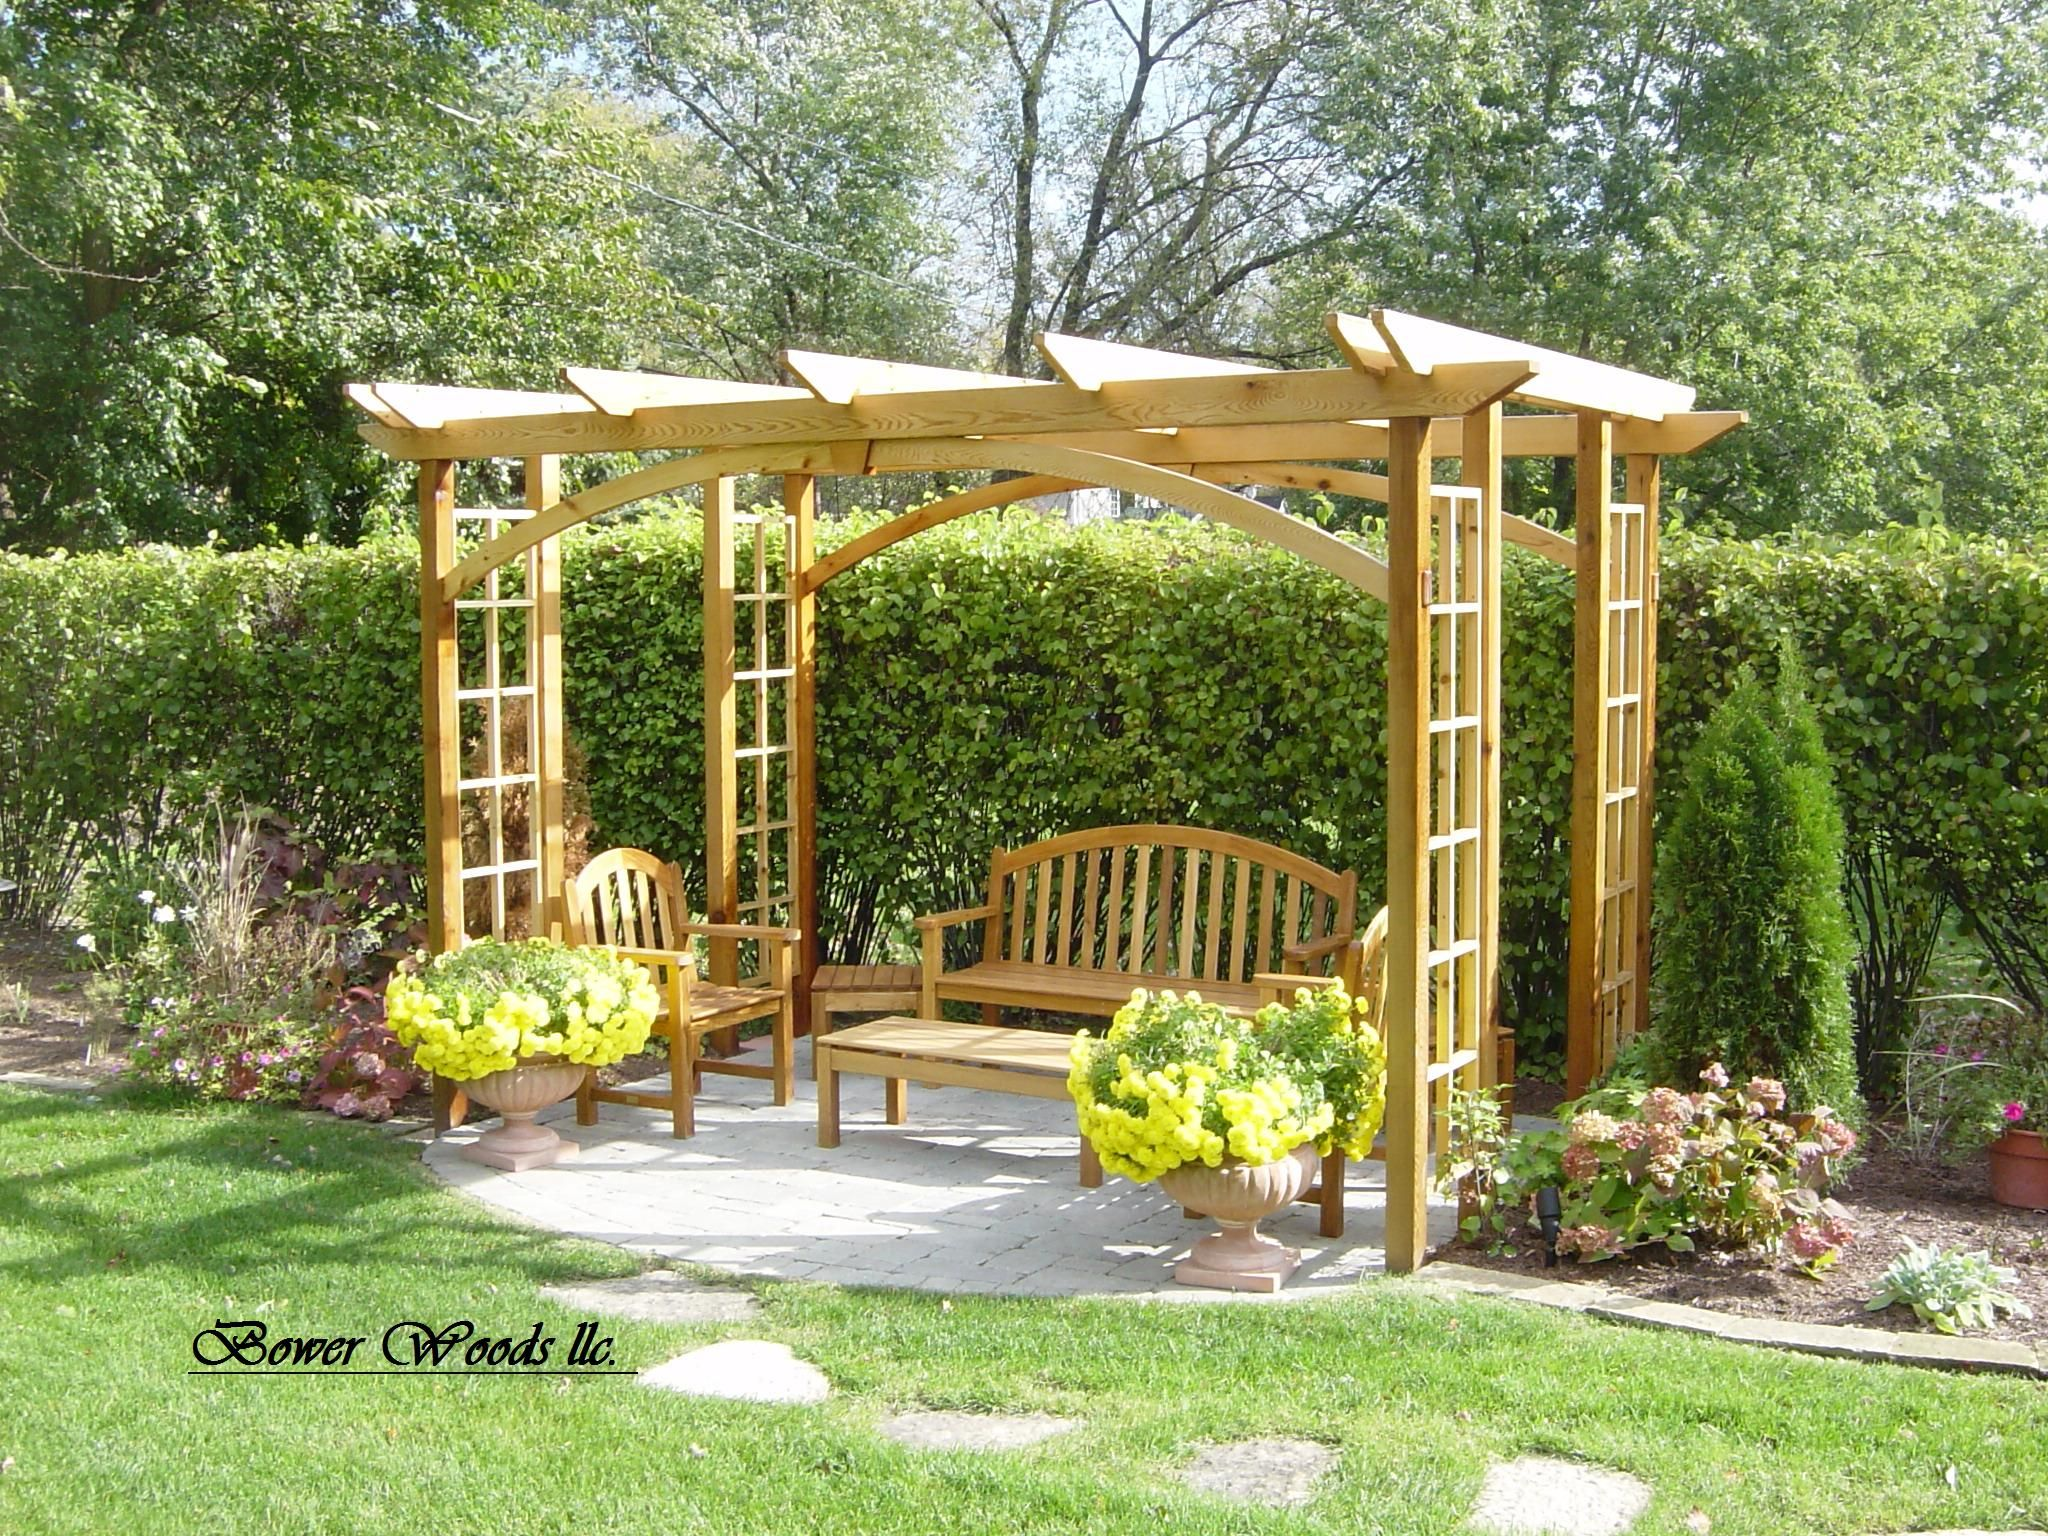 17 best images about pergola pergola on pinterest arbor design ideas - Arbor Designs Ideas